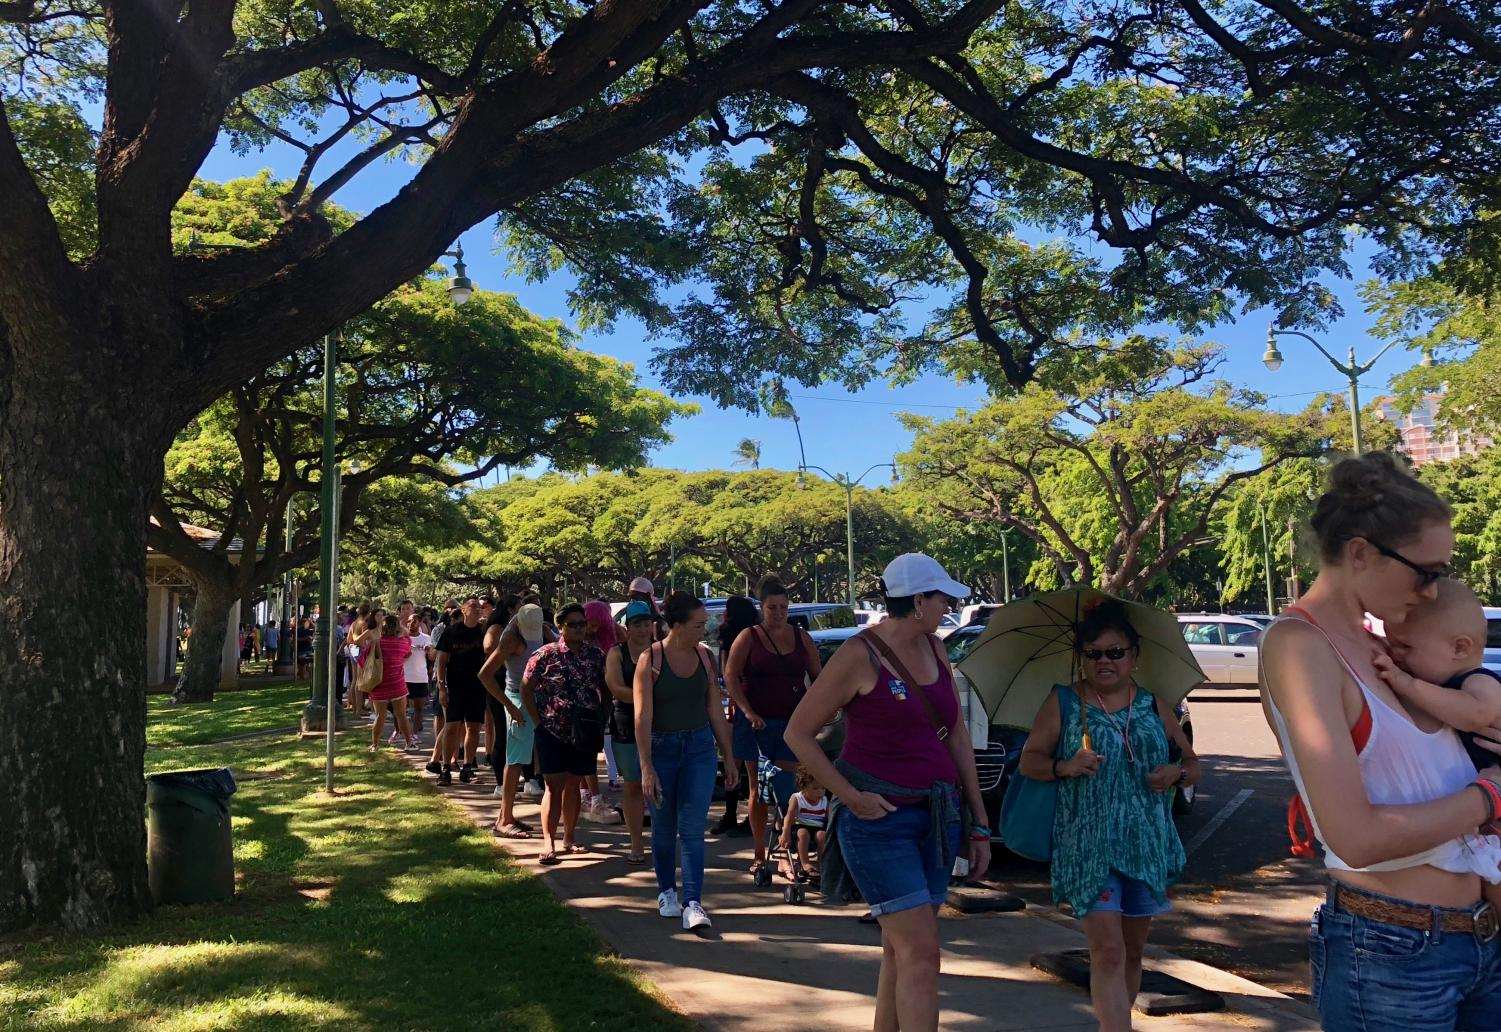 Honolulu+Pride+attendees+waited+patiently+in+line+at+the+Waikiki+Shell+for+entry+into+the+festival+where+the+celebration+continued+from+11%3A30+a.m.+to+6+p.m.